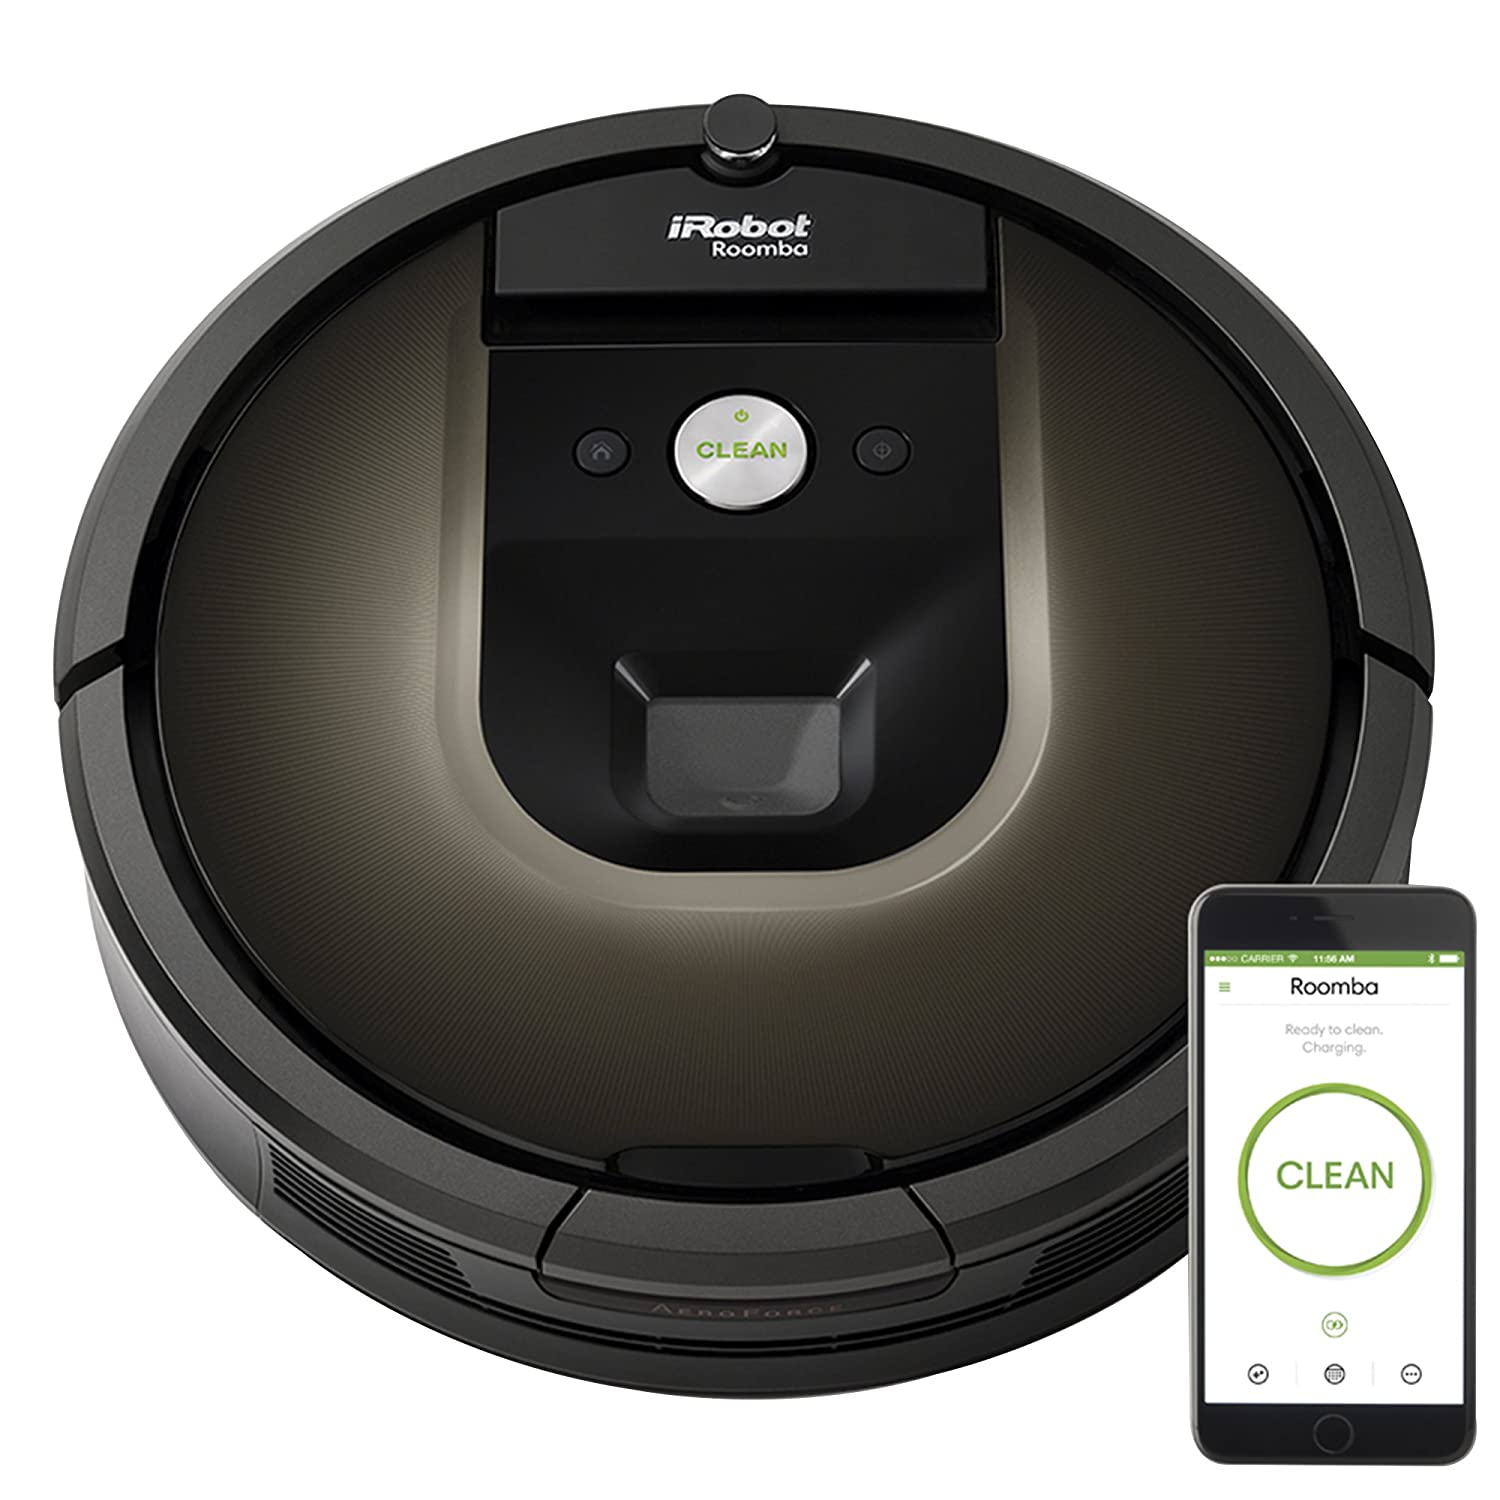 iRobot Roomba 980 Robotic Vacuum Cleaner reviews